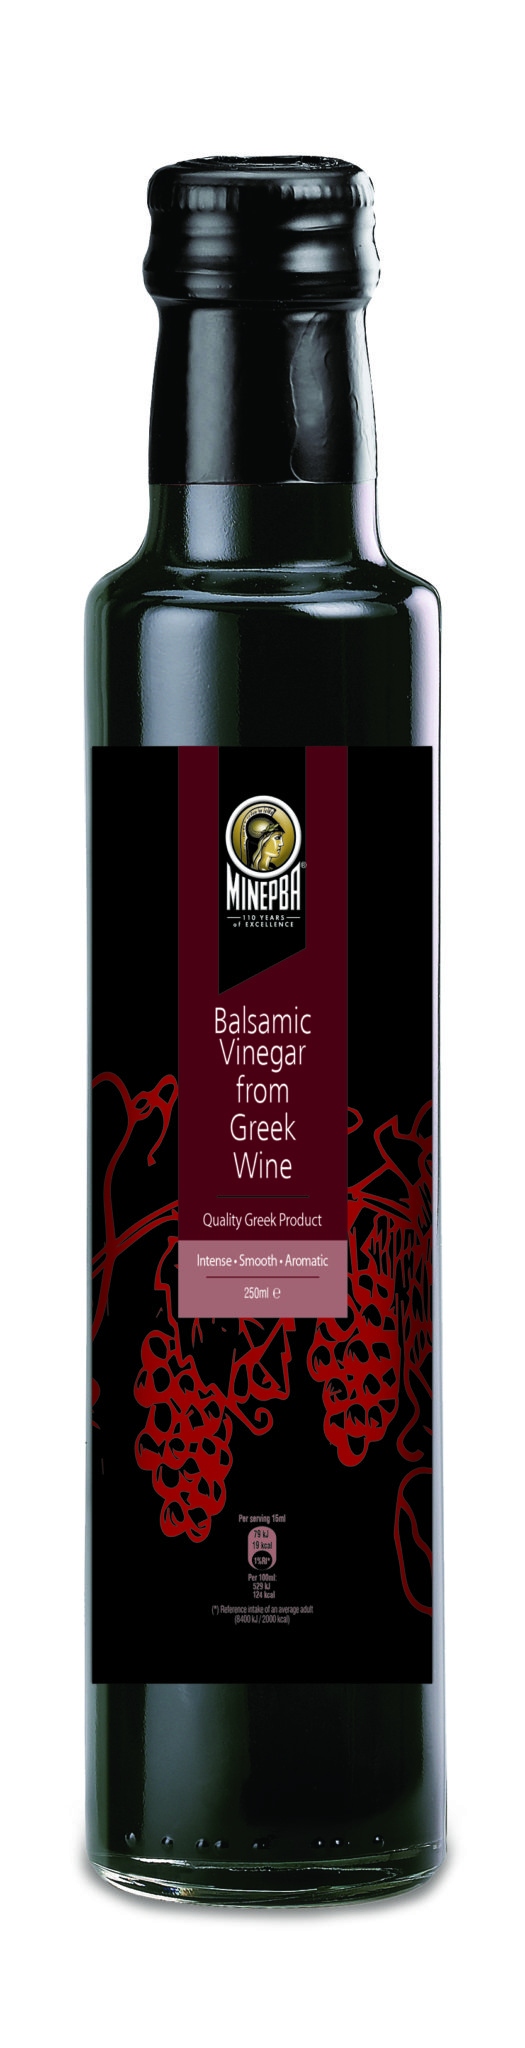 Minerva Balsamic Vinegar from Greek wine